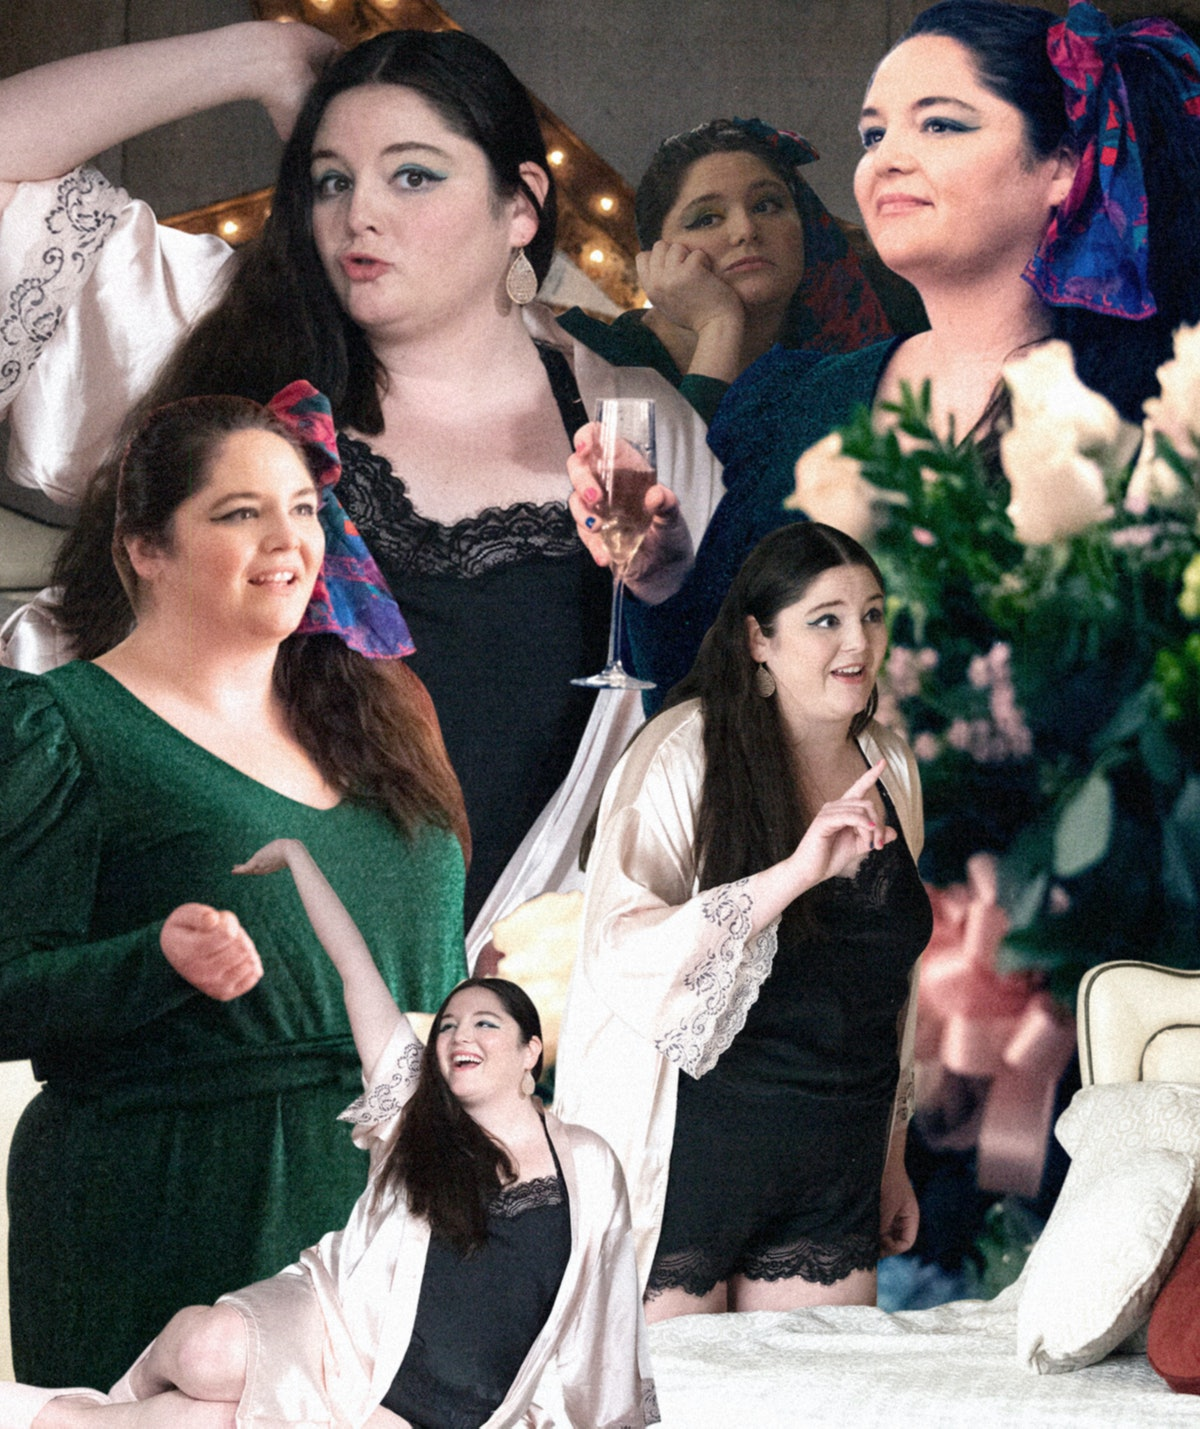 collage of meg stalter in character